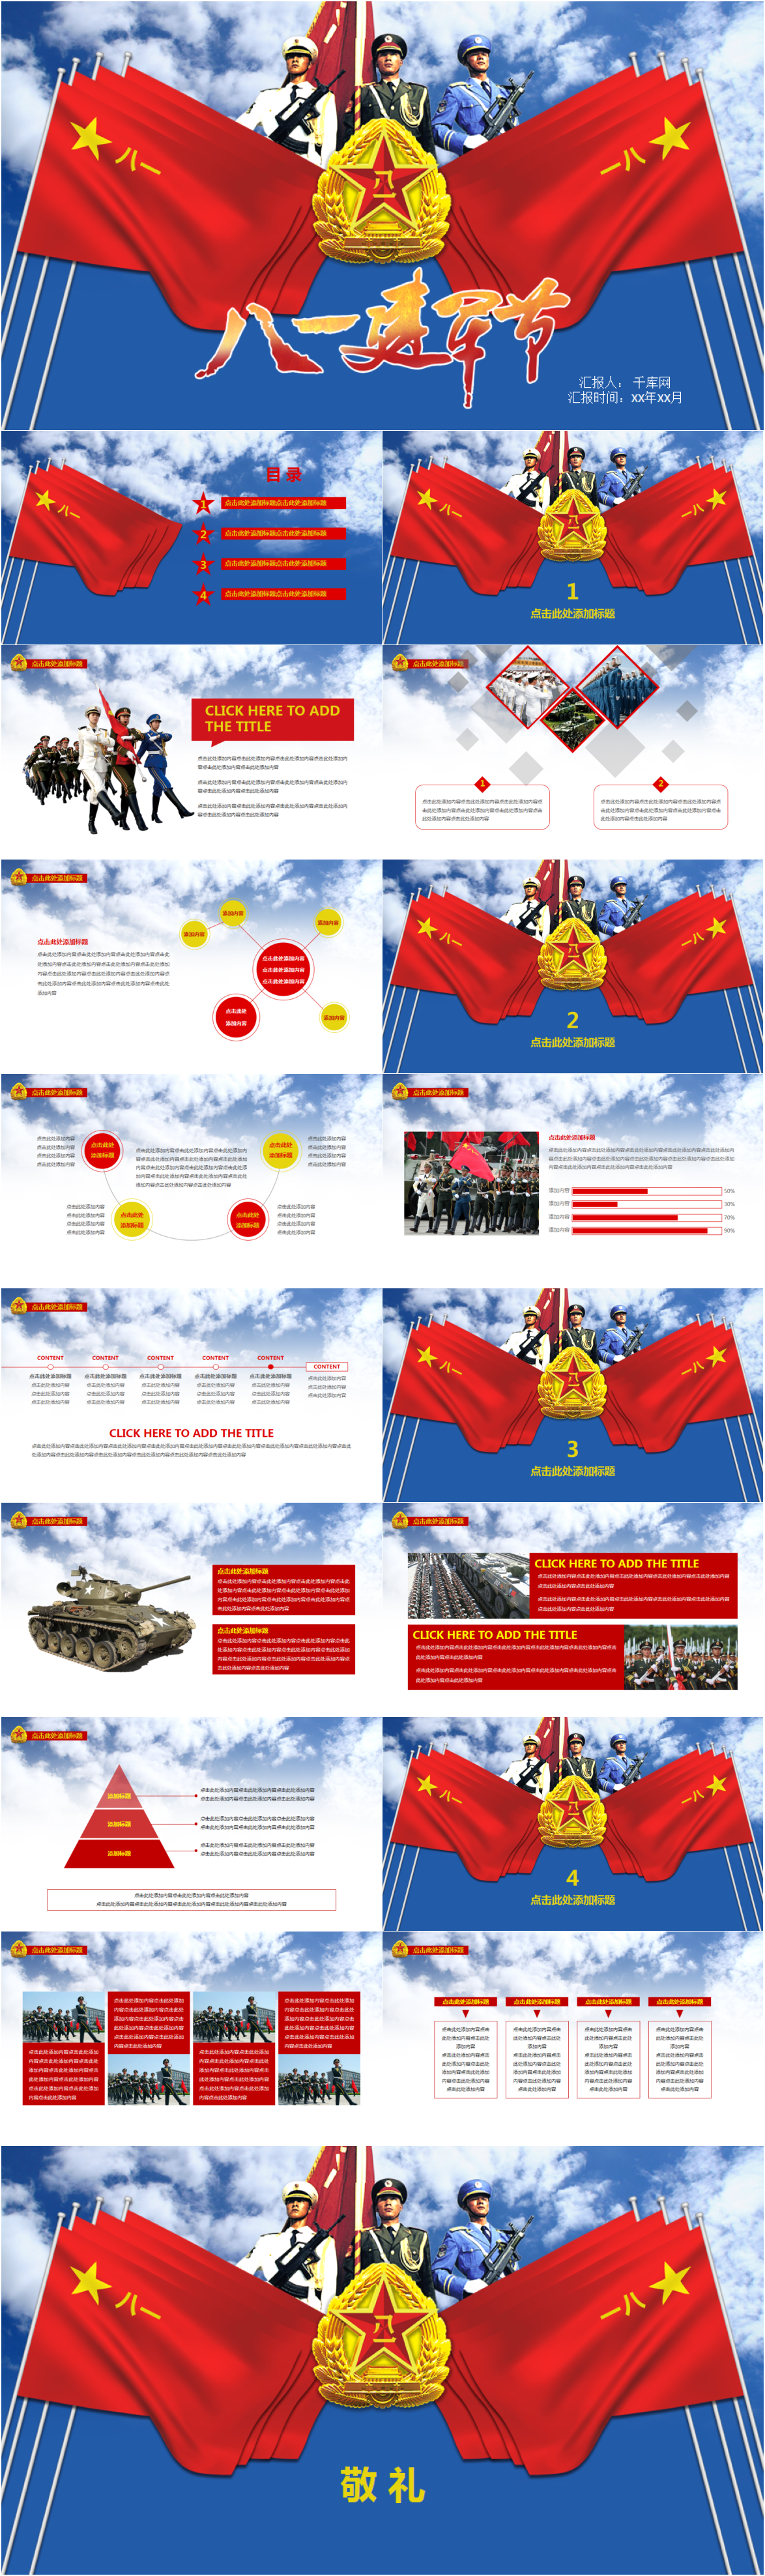 Awesome ppt template for the august 1 army festival for free ppt template for the august 1 army festival download the free toneelgroepblik Choice Image